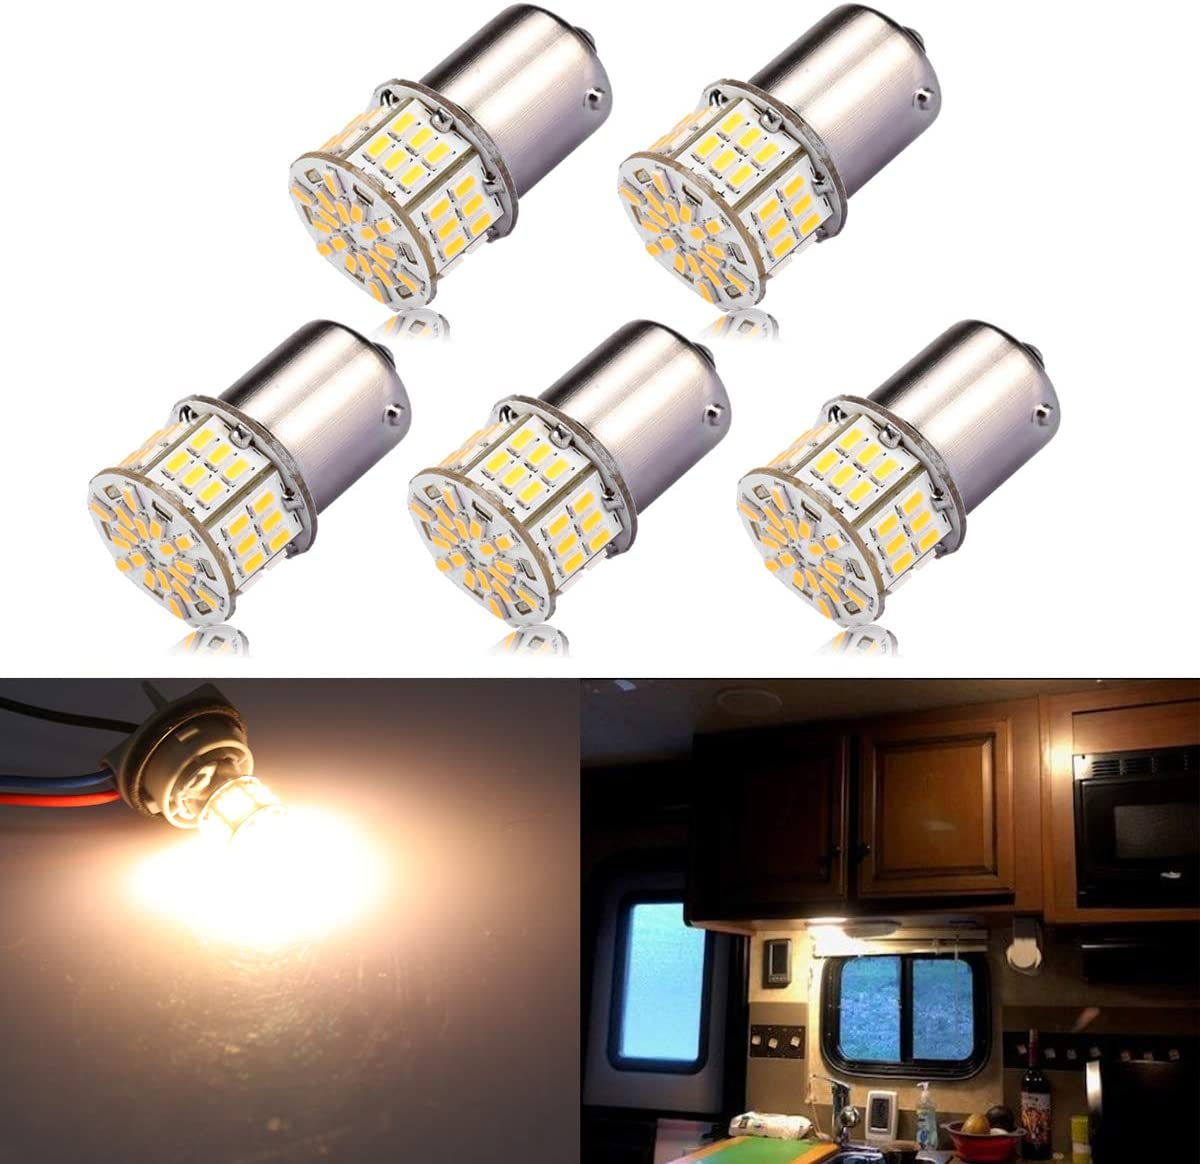 iBrightstar Super Bright 12-24V LED Bulbs 1141 1156 1003 1073 BA15S 7506 Replacement for RV Camper Interior Indoor Back Up Reverse Brake Tail Lights Warm White 4000K